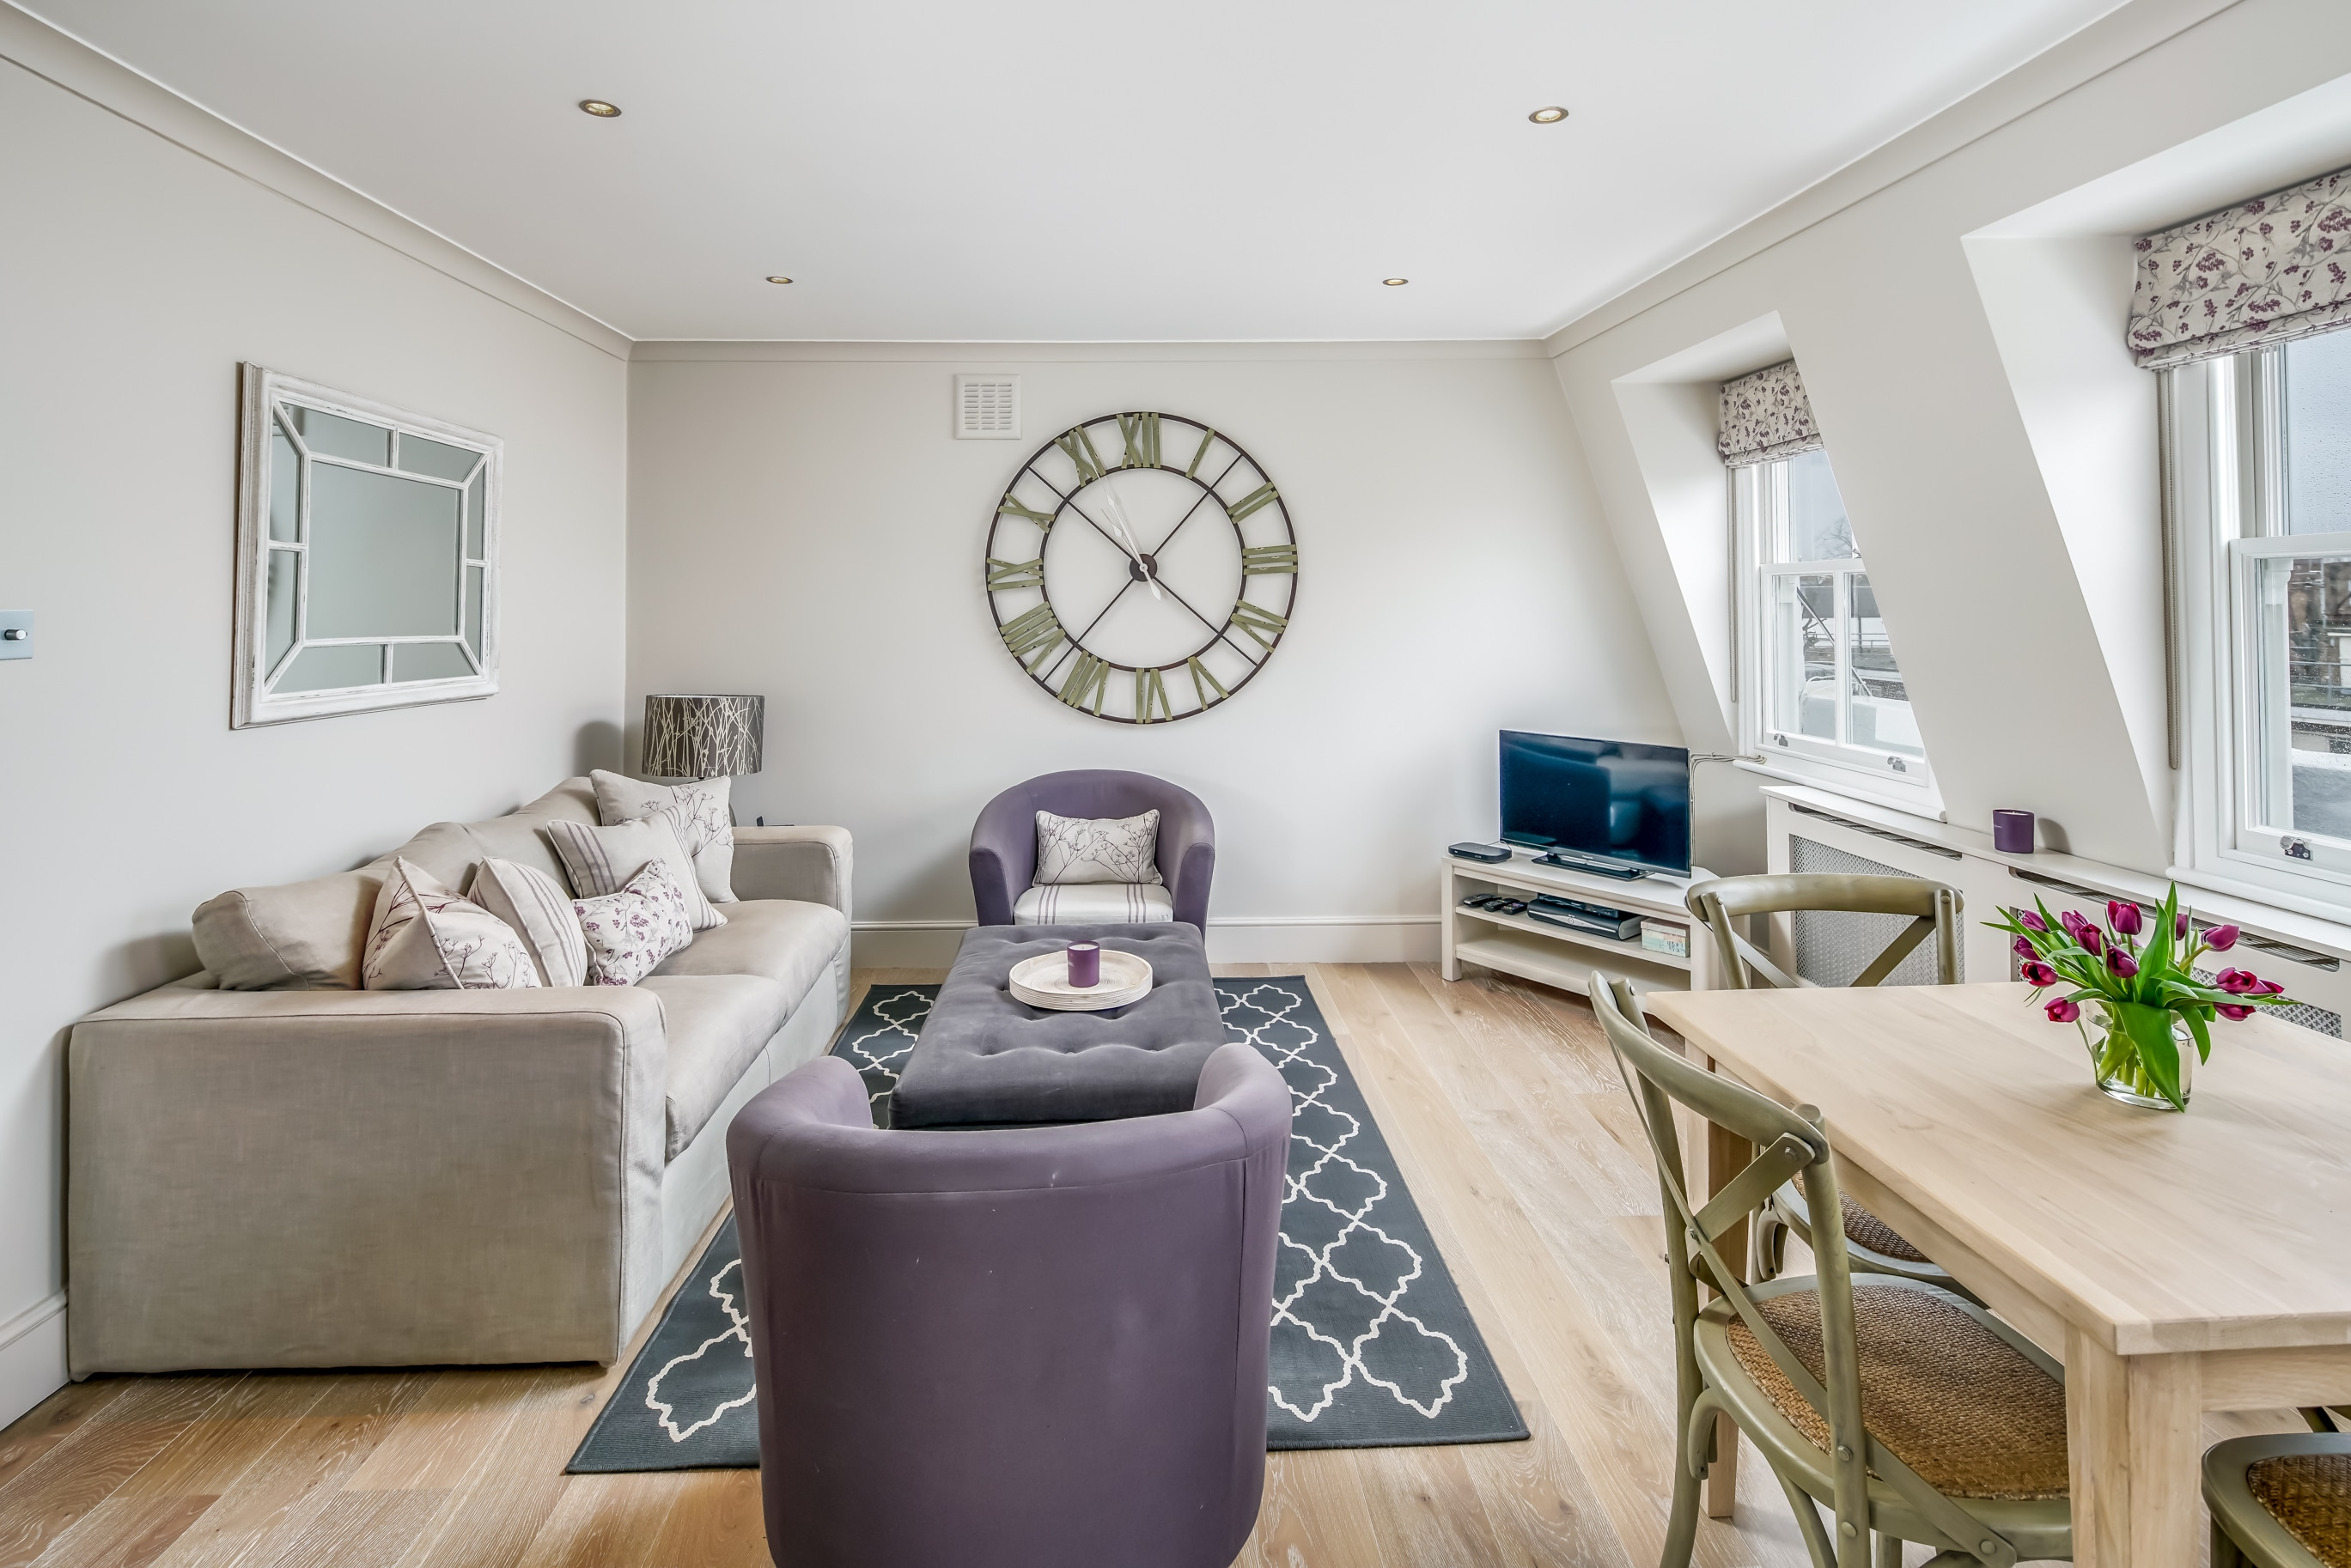 Property Image 1 - Light and modern 2 bedroom flat in Notting Hill